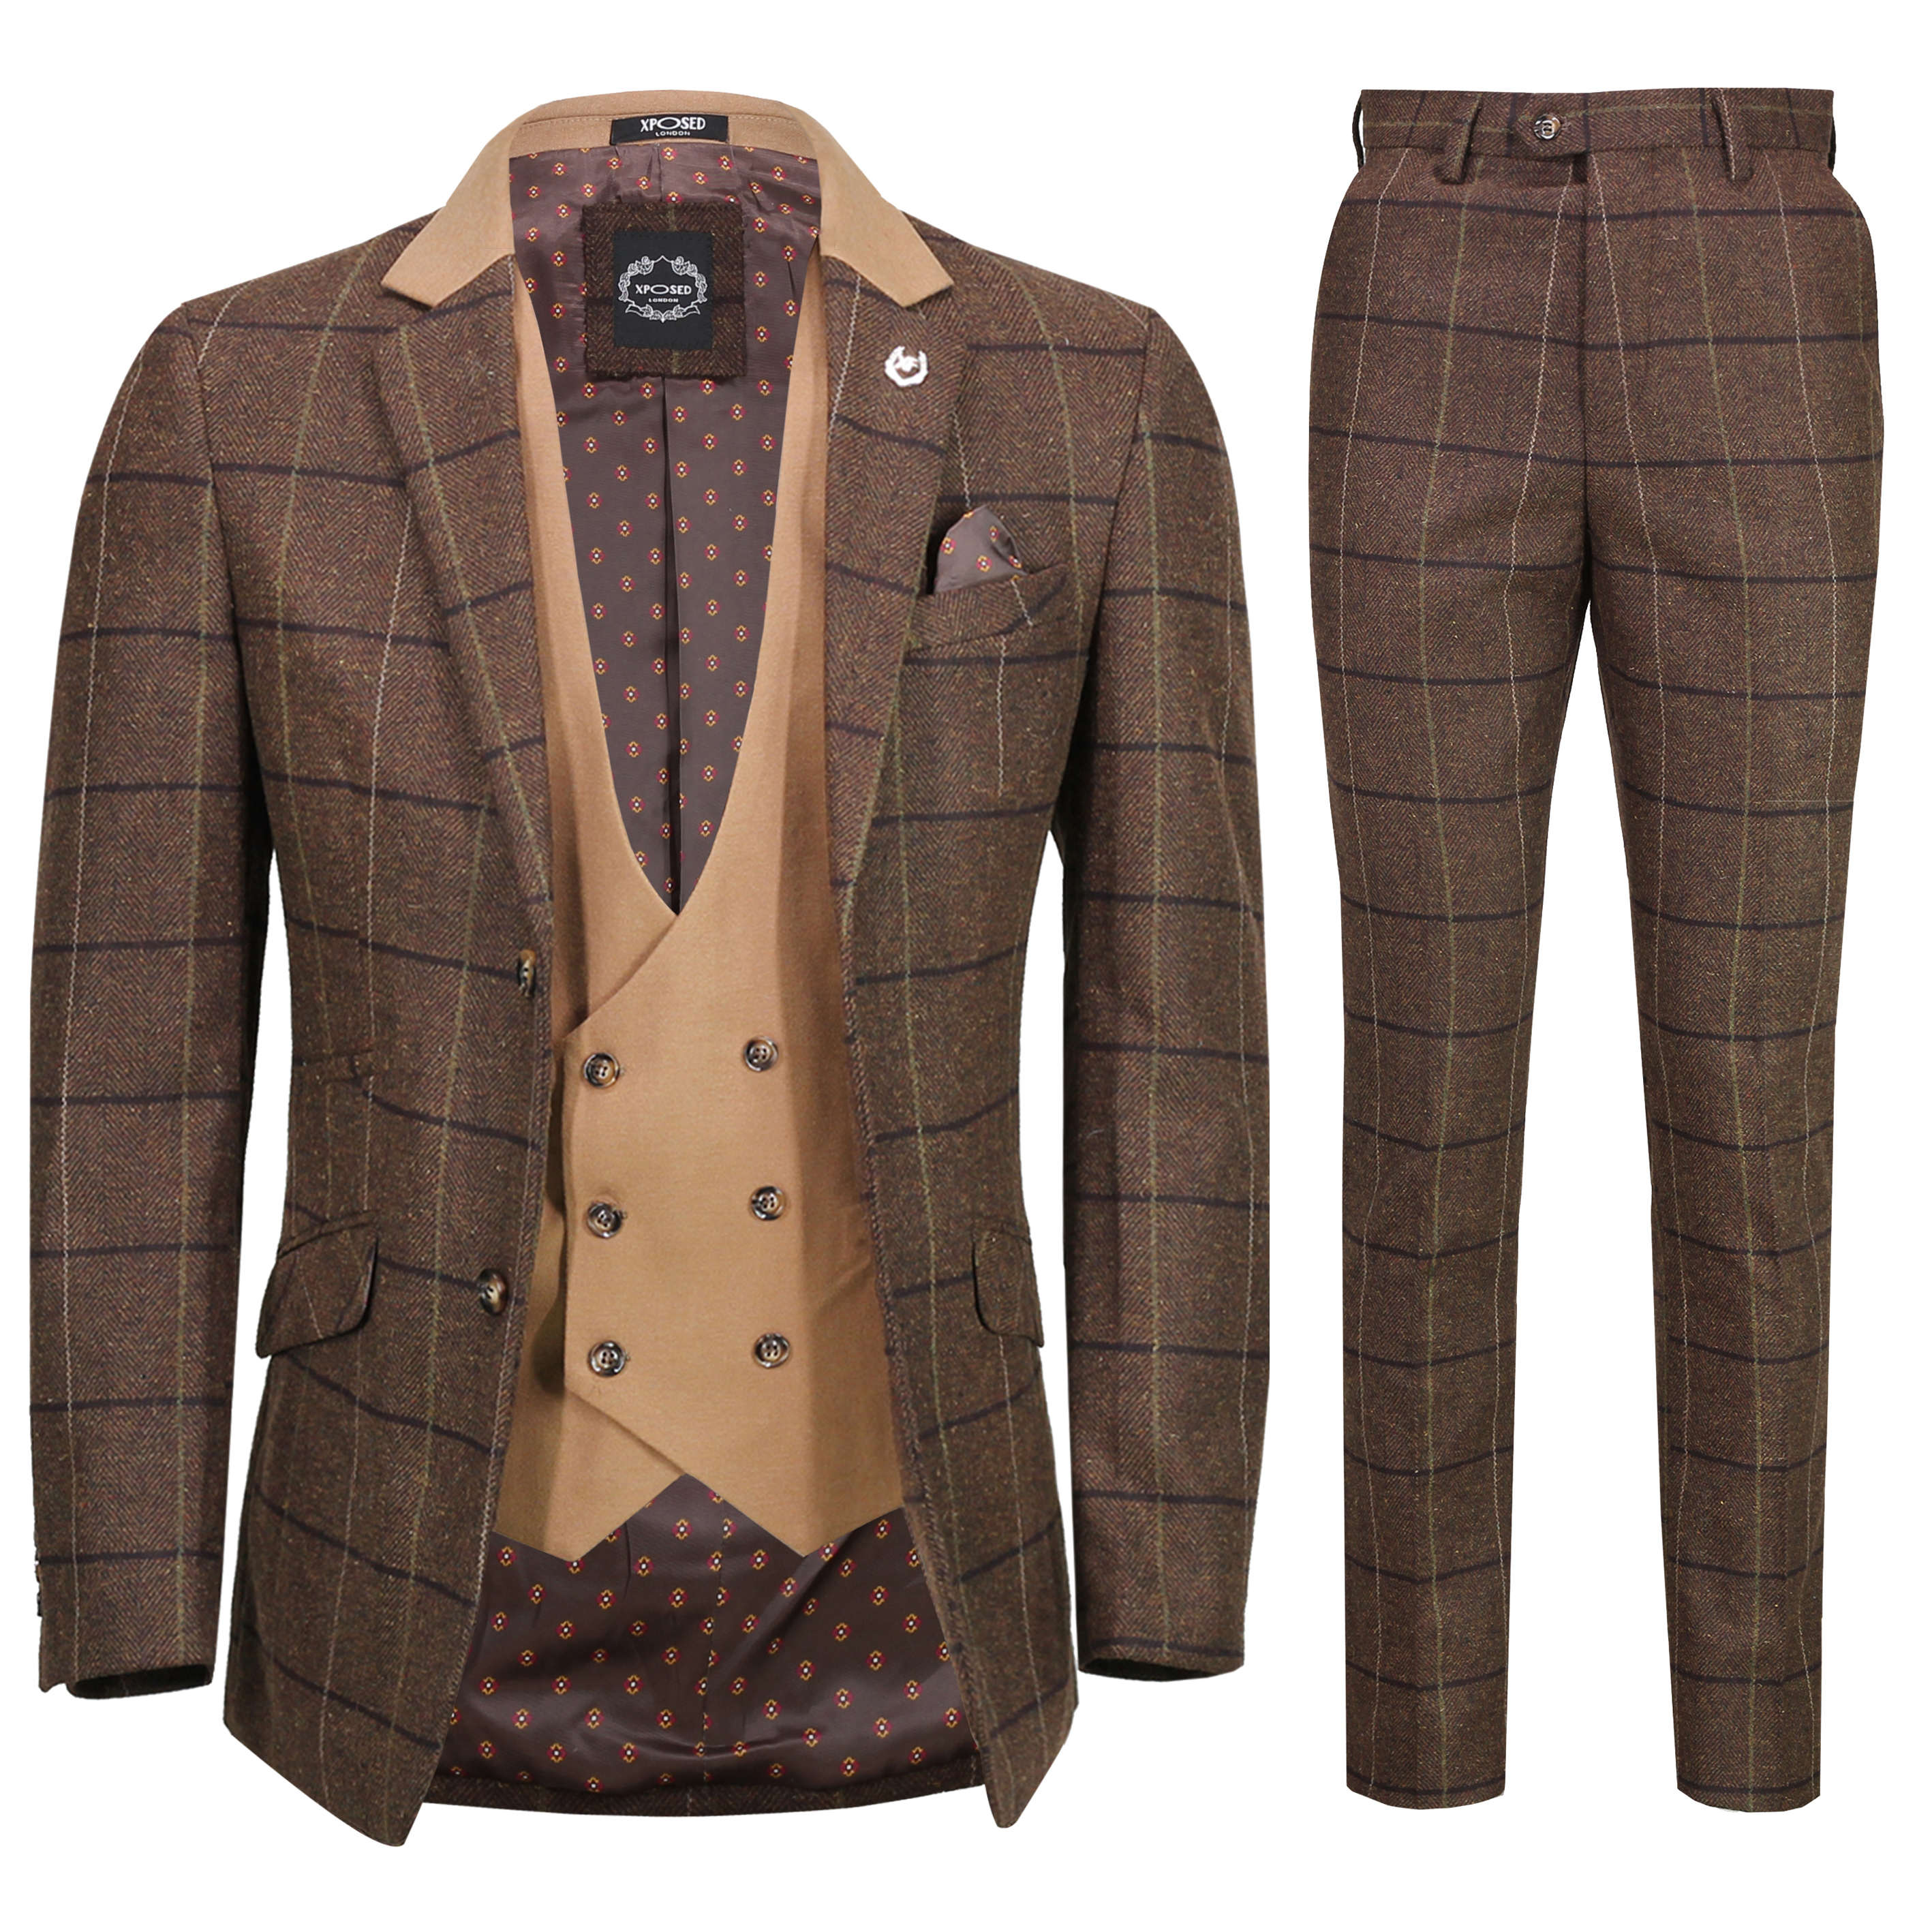 Mens Classic 3 Piece Tweed Suit Herringbone Check Smart Retro Tailored Fit Suit Ebay